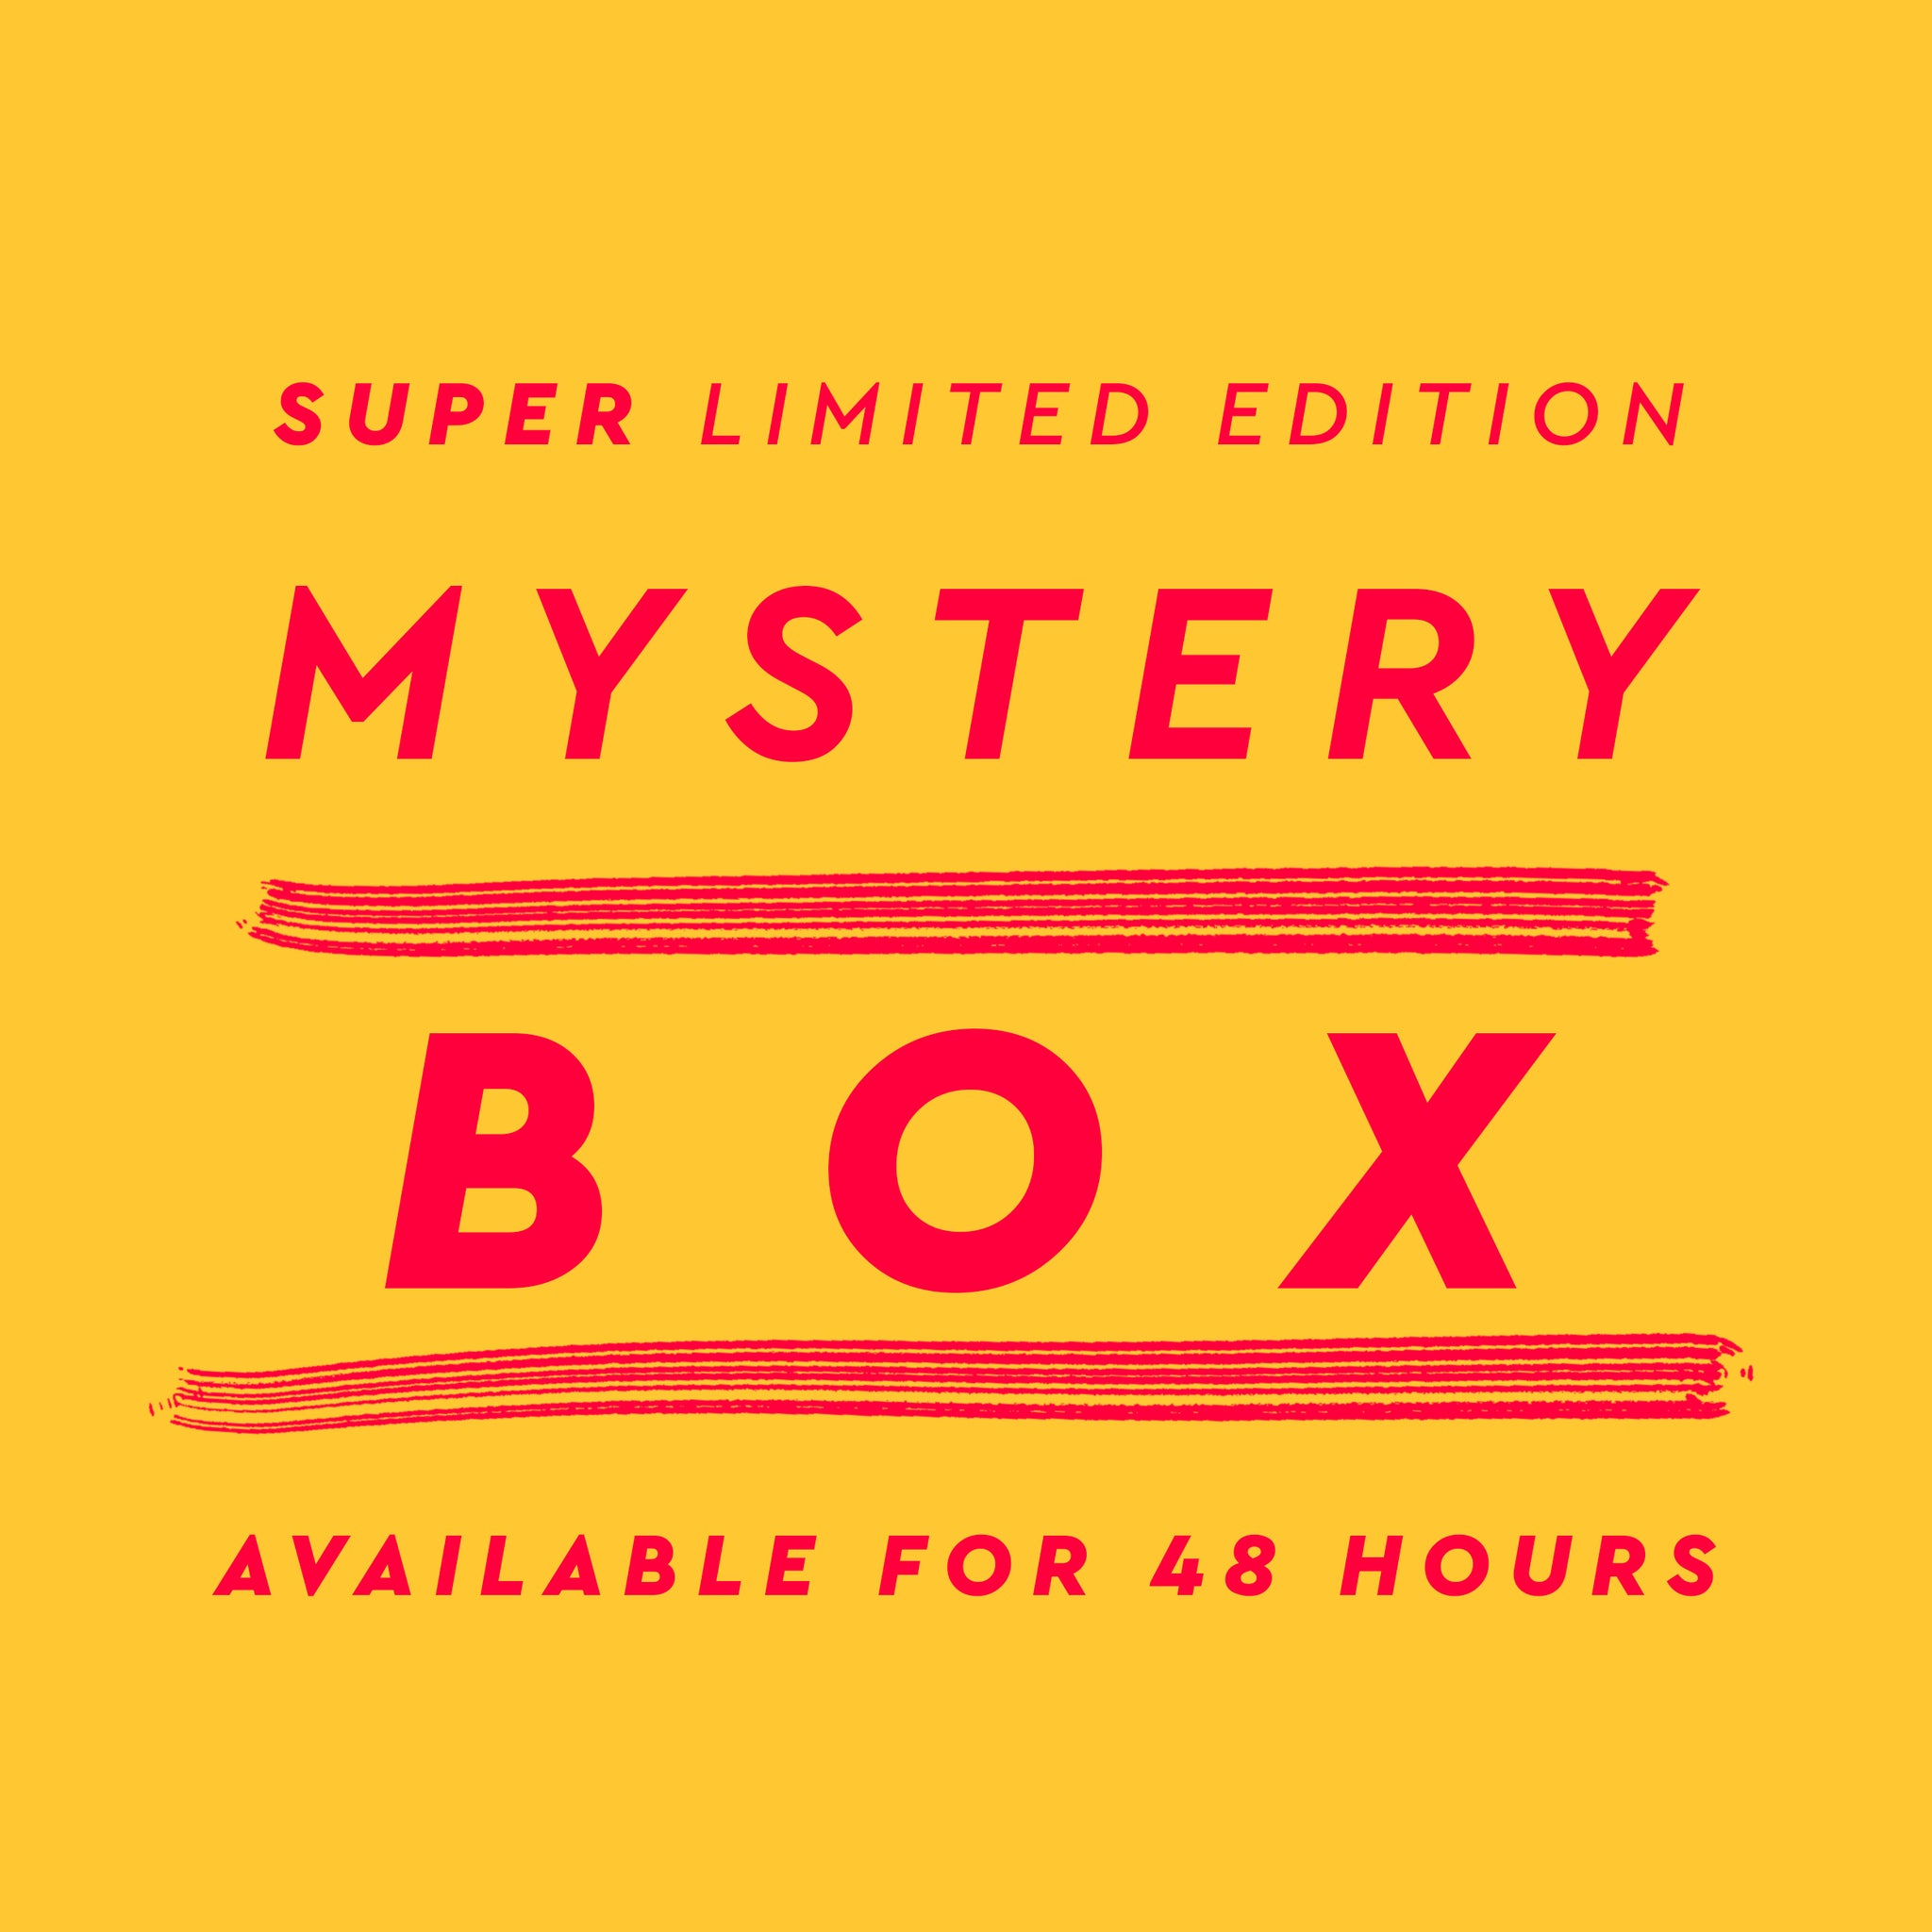 Super Limited Edition Mystery Box